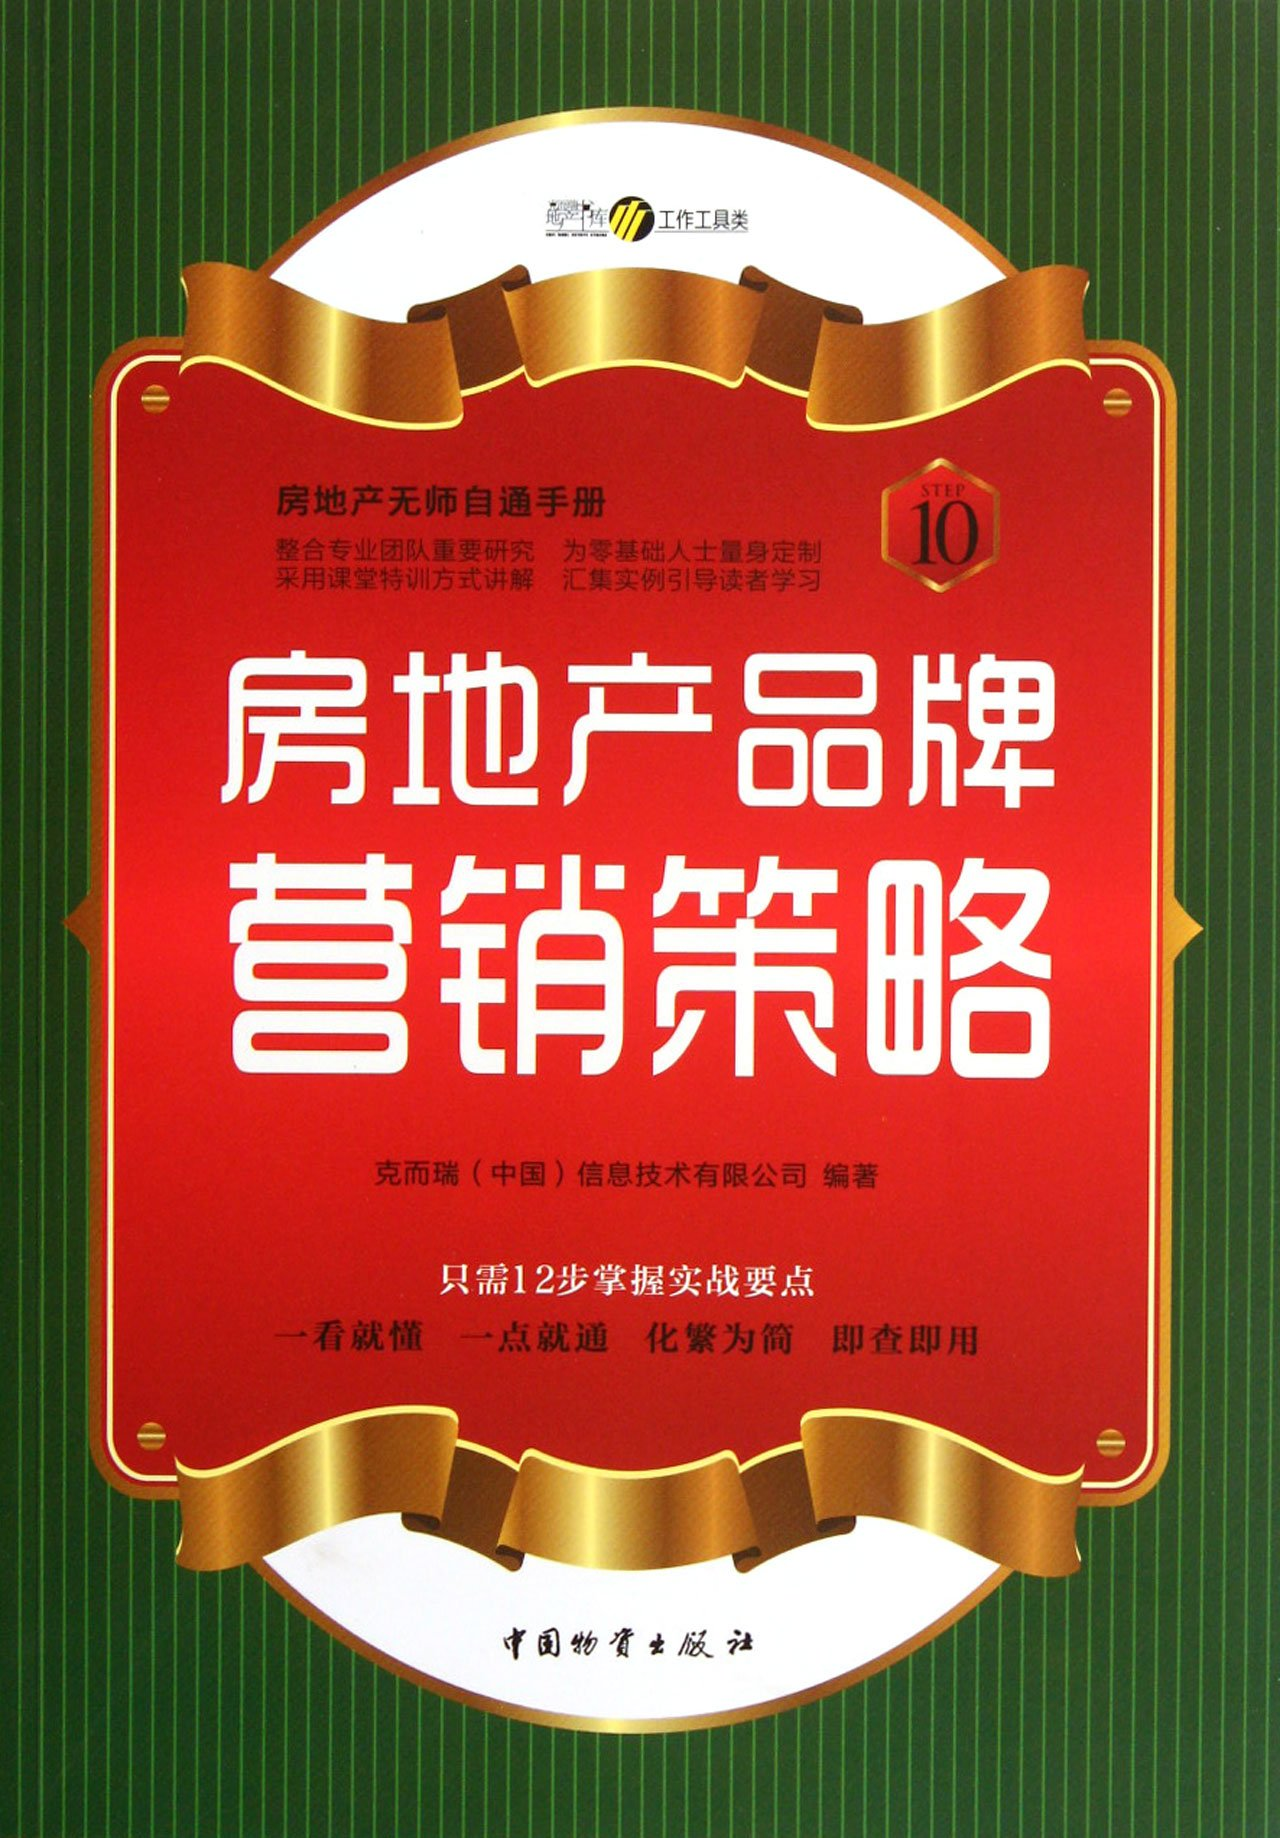 Real estate brand marketing strategy-real estate self-taught manual-STEP 10 (Chinese Edition) ebook